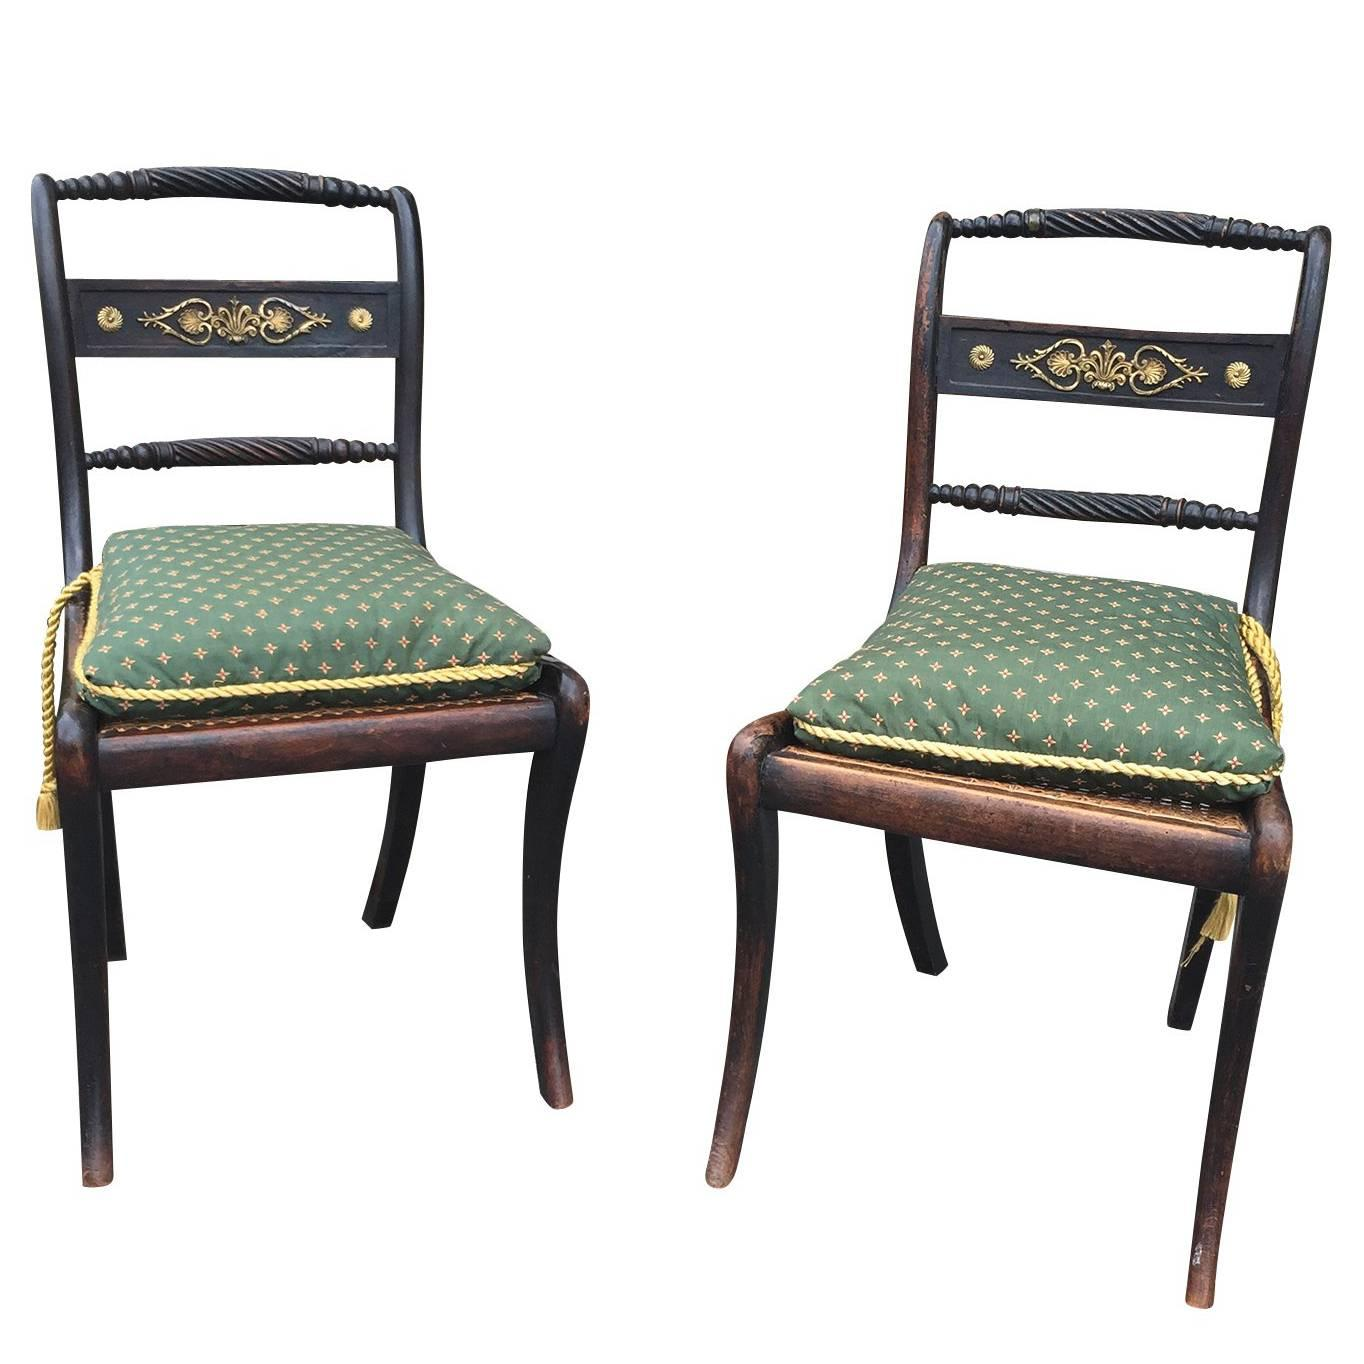 Pair of Circa 1820 English Regency Side Chairs, of the Period, Cane Seat